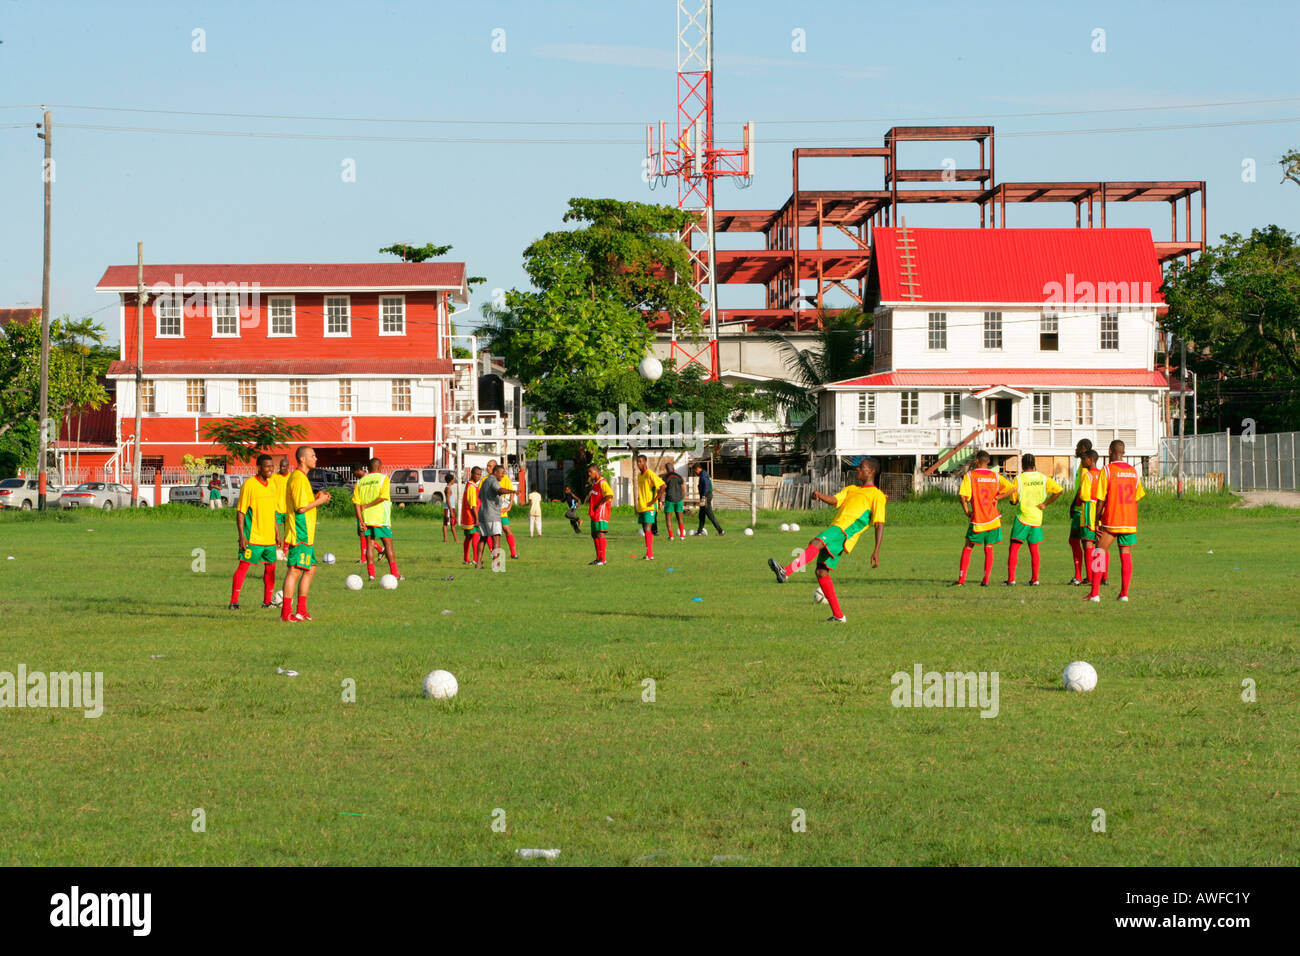 Young people playing football on a lawn in Georgetown, Guyana, South America - Stock Image